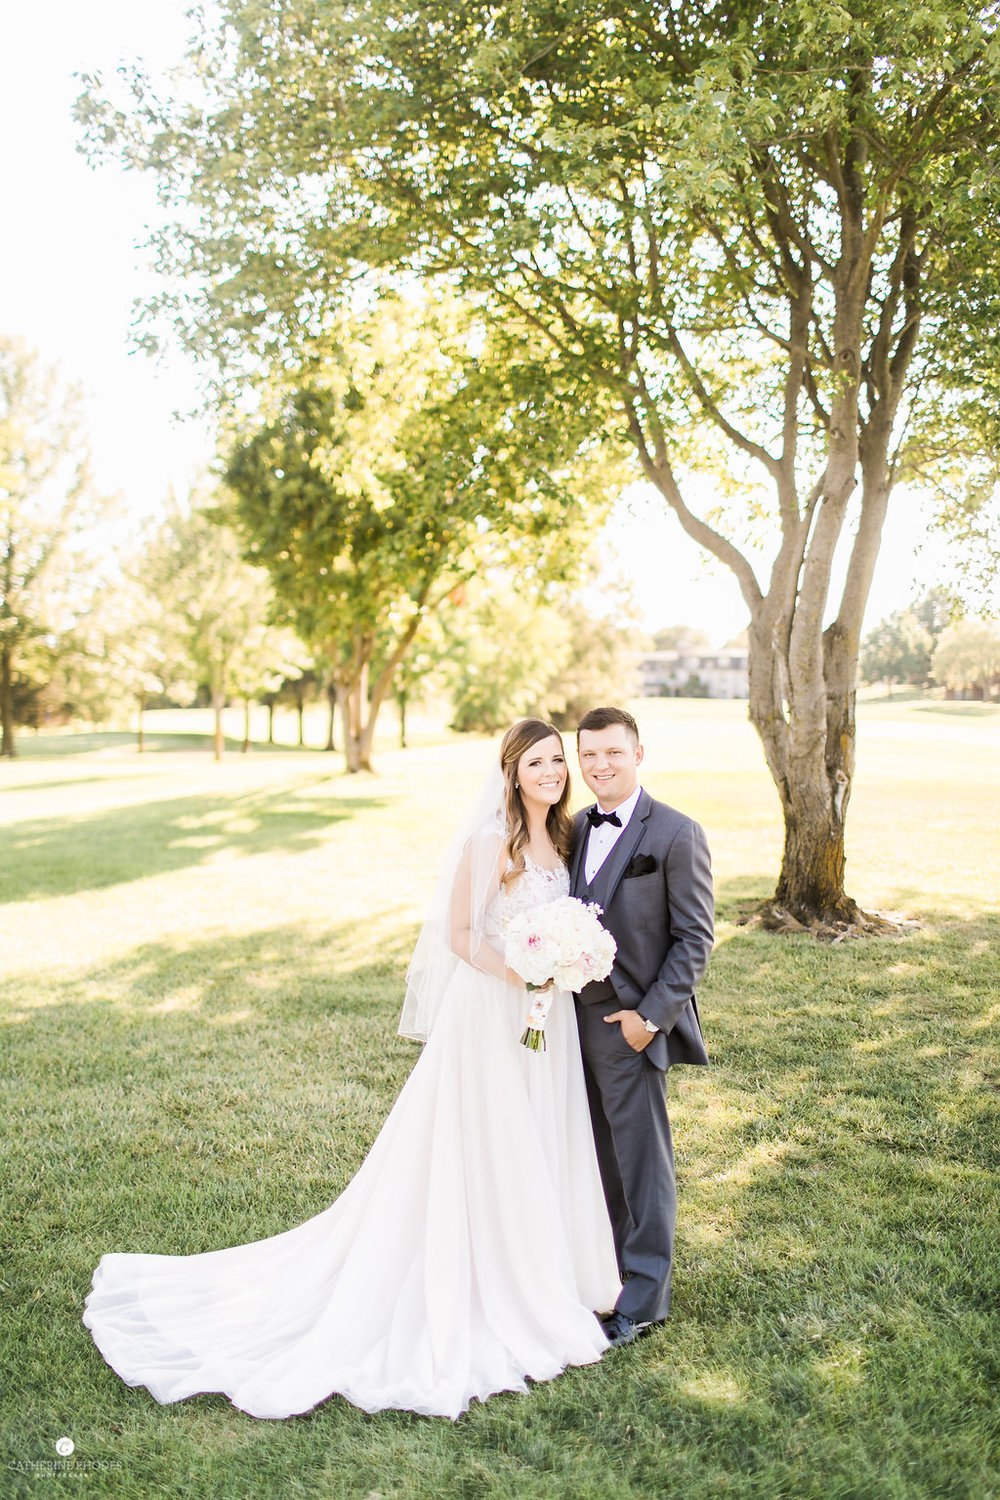 CountryClubofMissouriWedding_AnnaDrew_Portraits_CatherineRhodesPhotography(212of332)-Edit.jpg